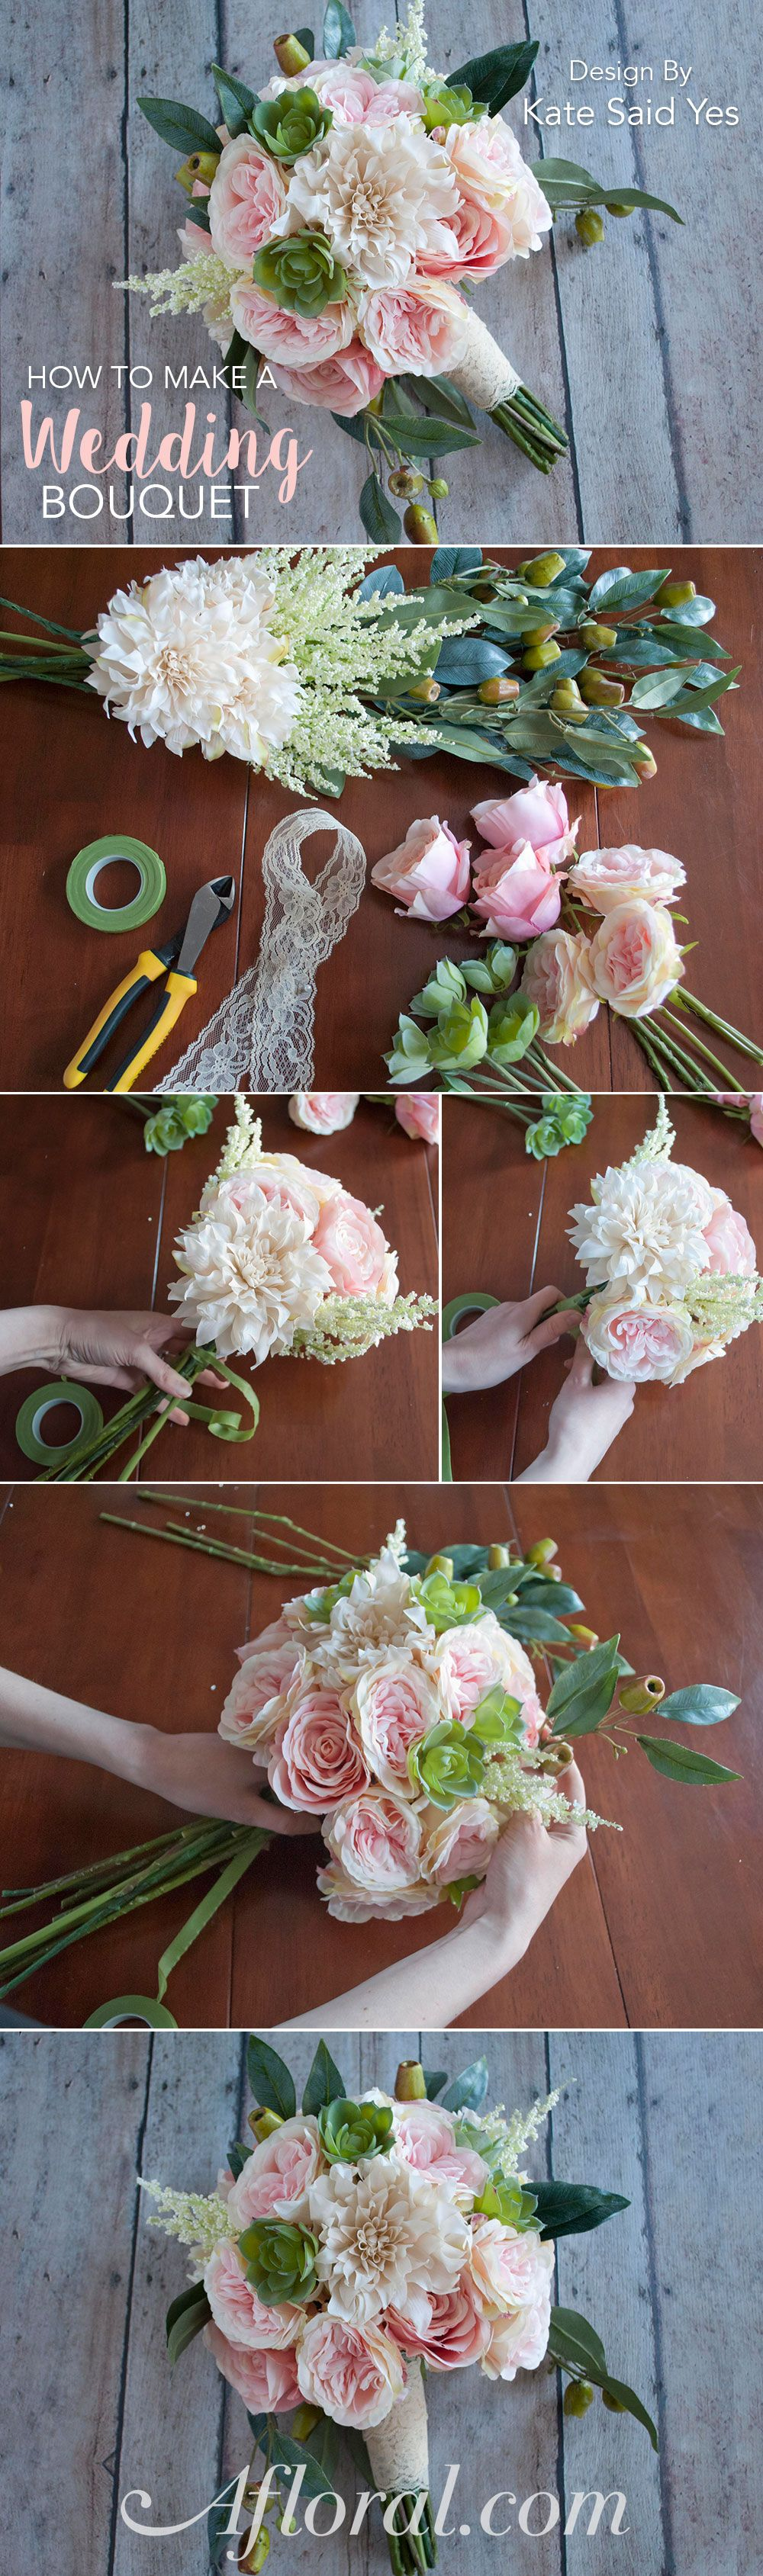 How To Make A Wedding Bouquet In 2018 Dont Mind If I Do